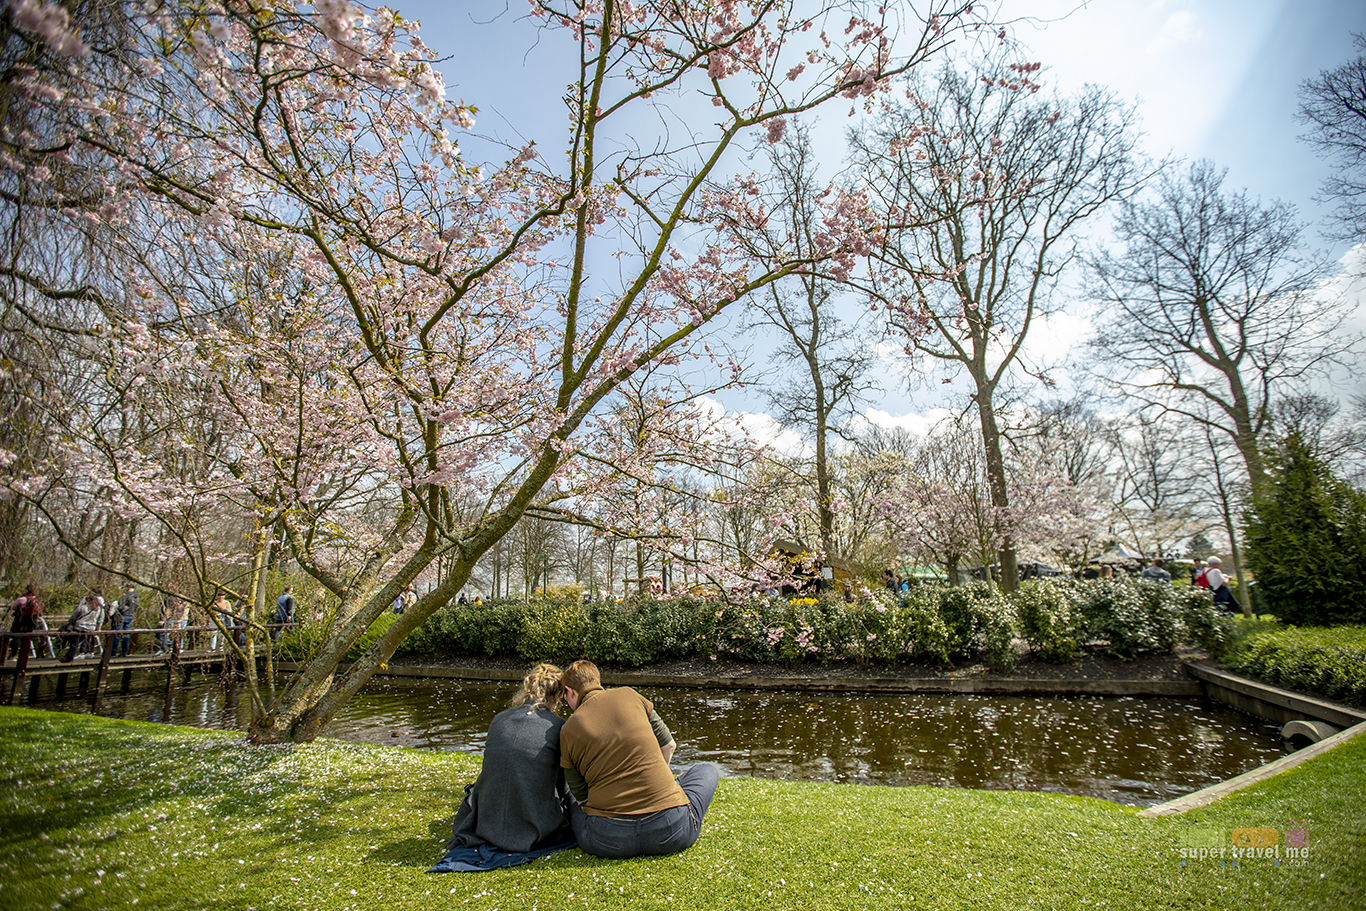 Sit on the lawn, enjoy the fresh air at The Keukenhof Holland